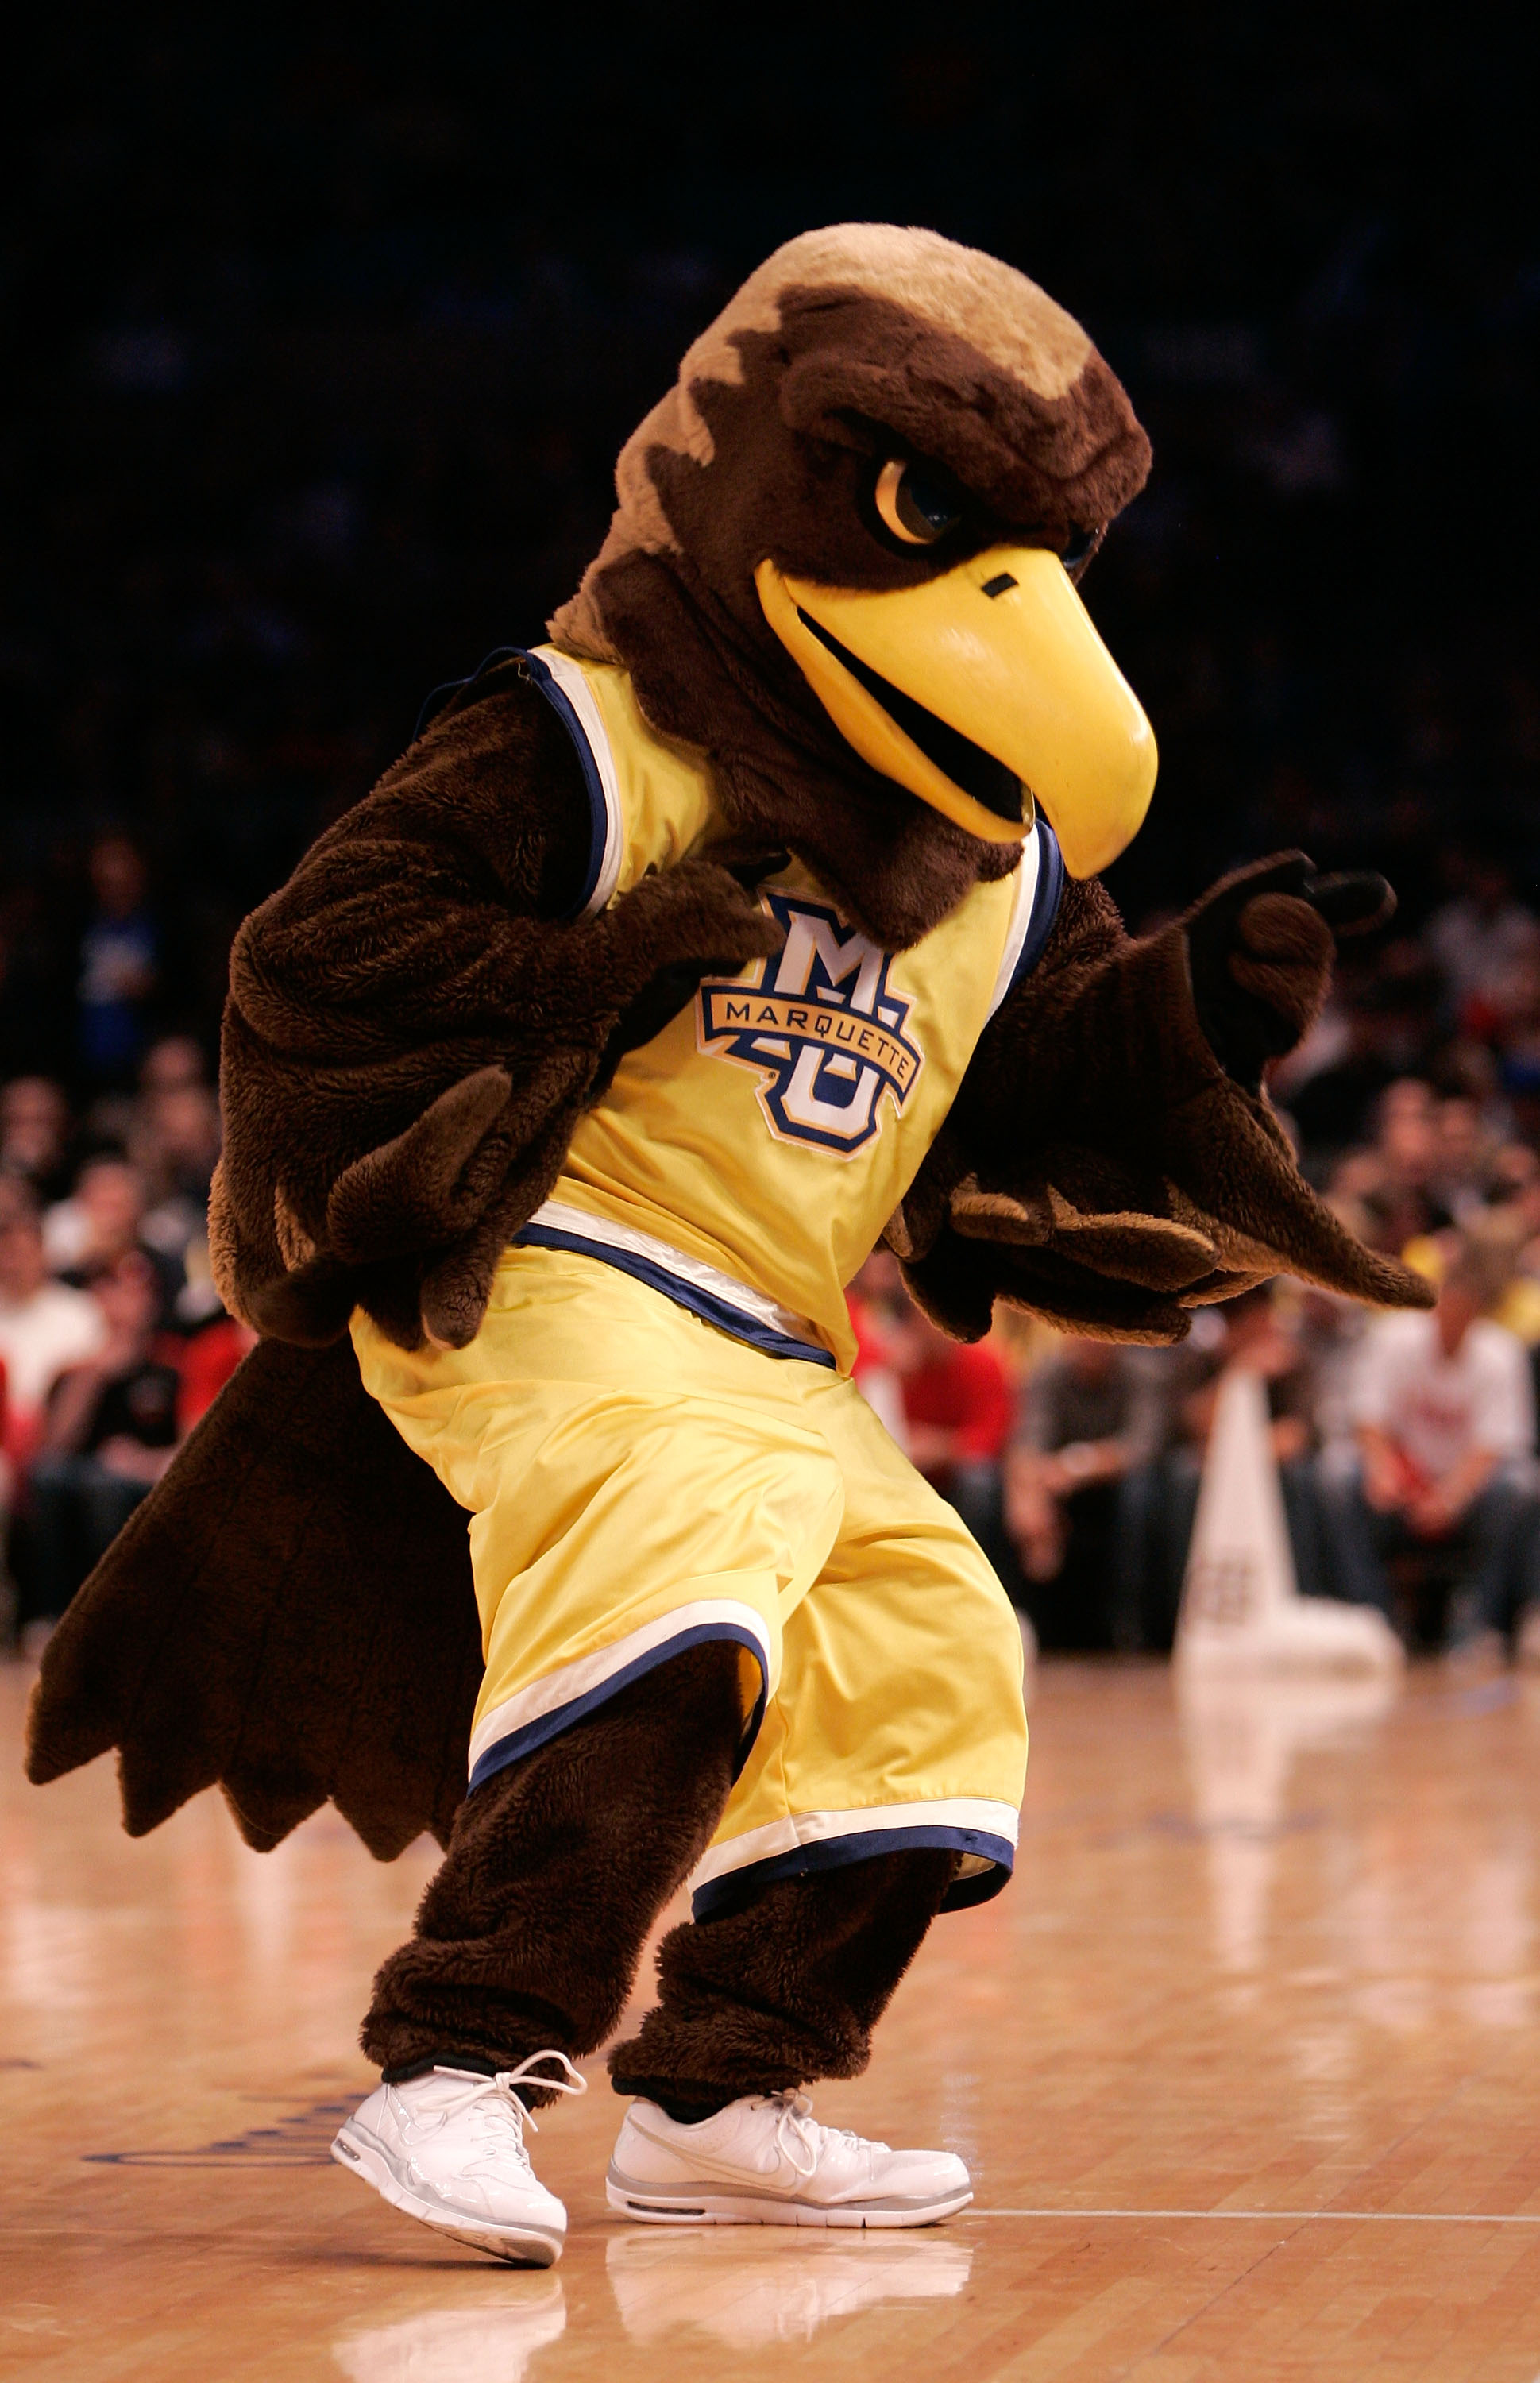 NEW YORK, NY - MARCH 10:  The Marquette Golden Eagles mascot walks on the court during the game against the Louisville Cardinals during the quarterfinals of the 2011 Big East Men's Basketball Tournament presented by American Eagle Outfitters  at Madison S